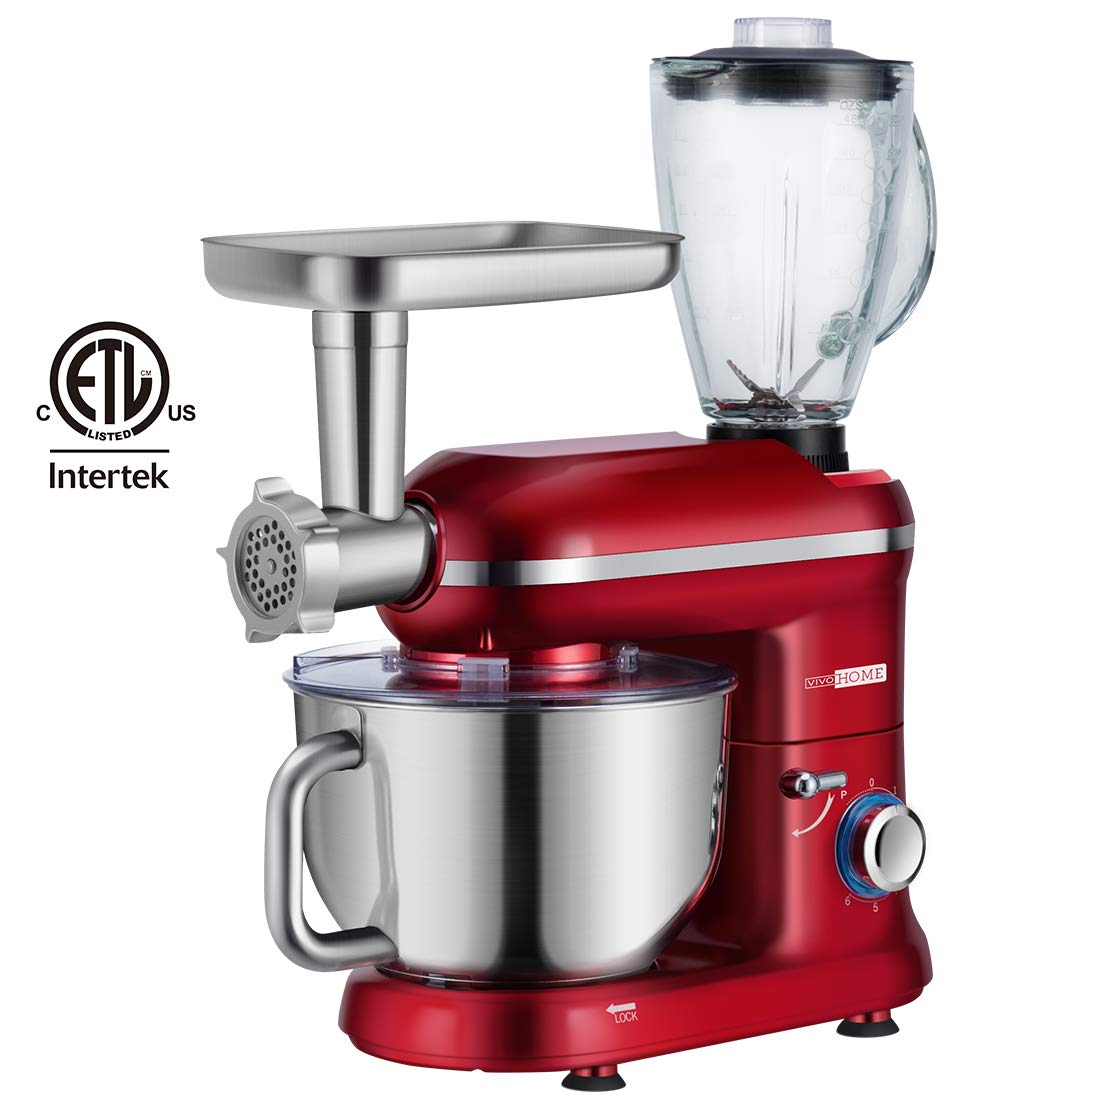 VIVOHOME Electric 650W Multi-functional 6-Speed Tilt-Head Stand Mixer Meat Grinder Juice Blender with 6 Quart Stainless Steel Bowl Red ETL Listed